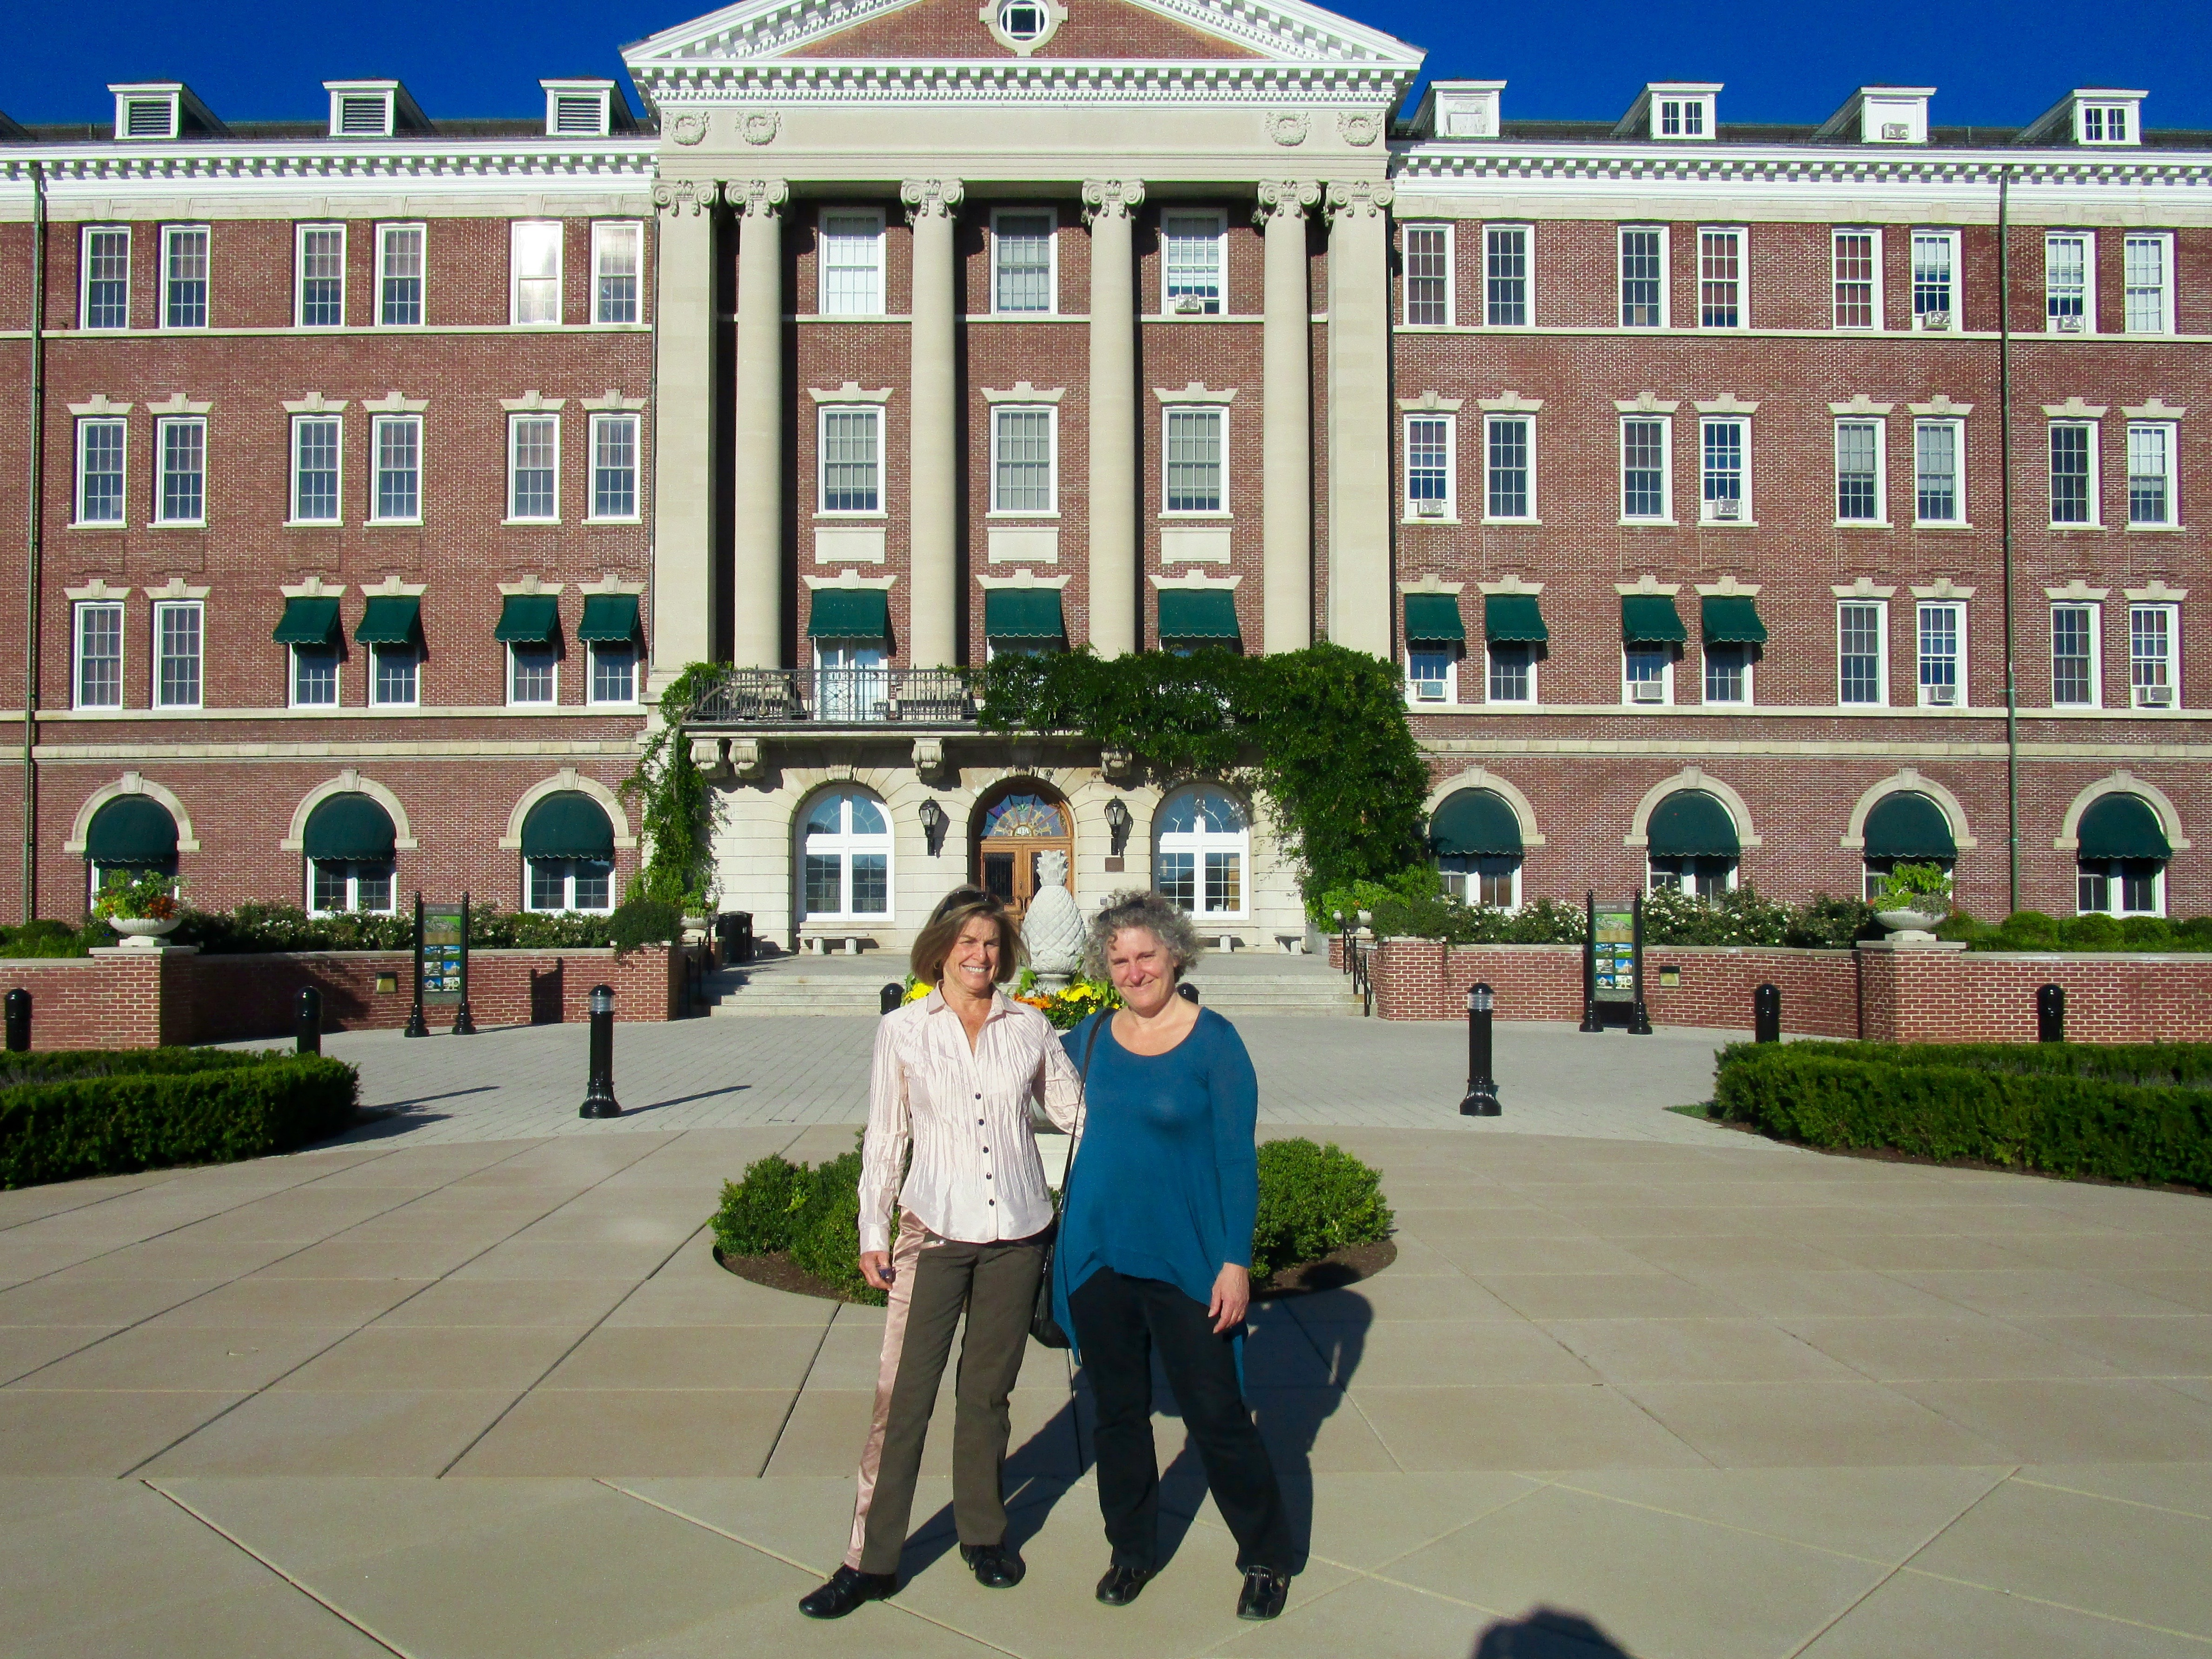 BETSY AND I RETURNED ON THE NEXT DAY TO TOUR THE VERY BEAUTIFUL CIA CAMPUS.